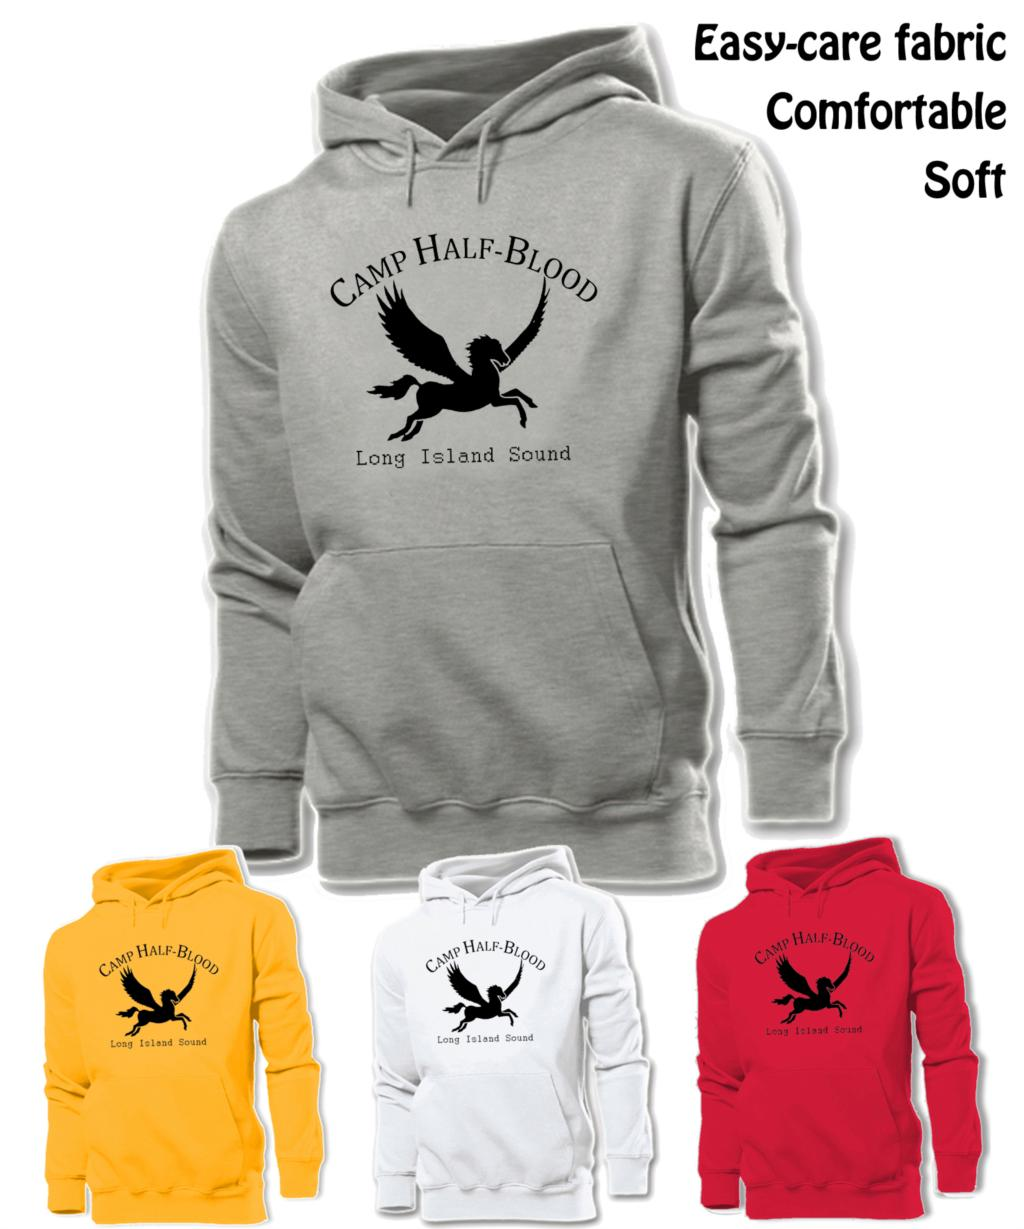 NEW Camp Half Blood Long Island Sound Greek Gods Graphic Hoodie Men's Boy's Women's Girl's Sweatshirt Tops White Red Yellow Grey image